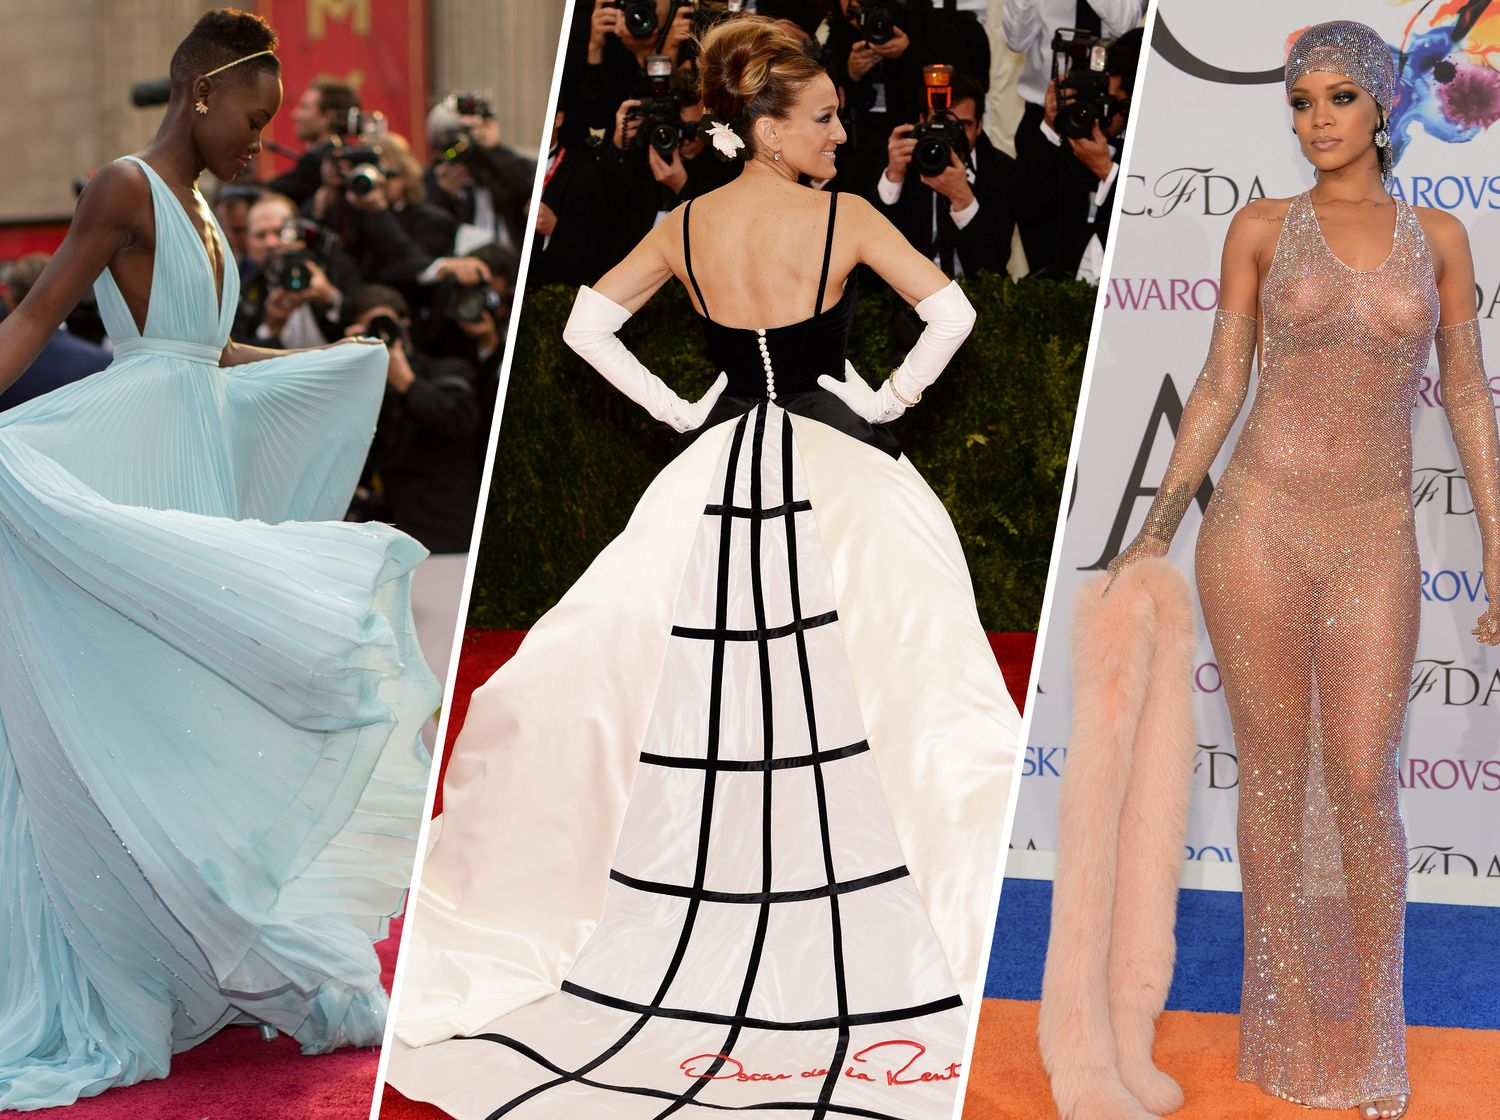 the best oscar looks of all time MEMEs